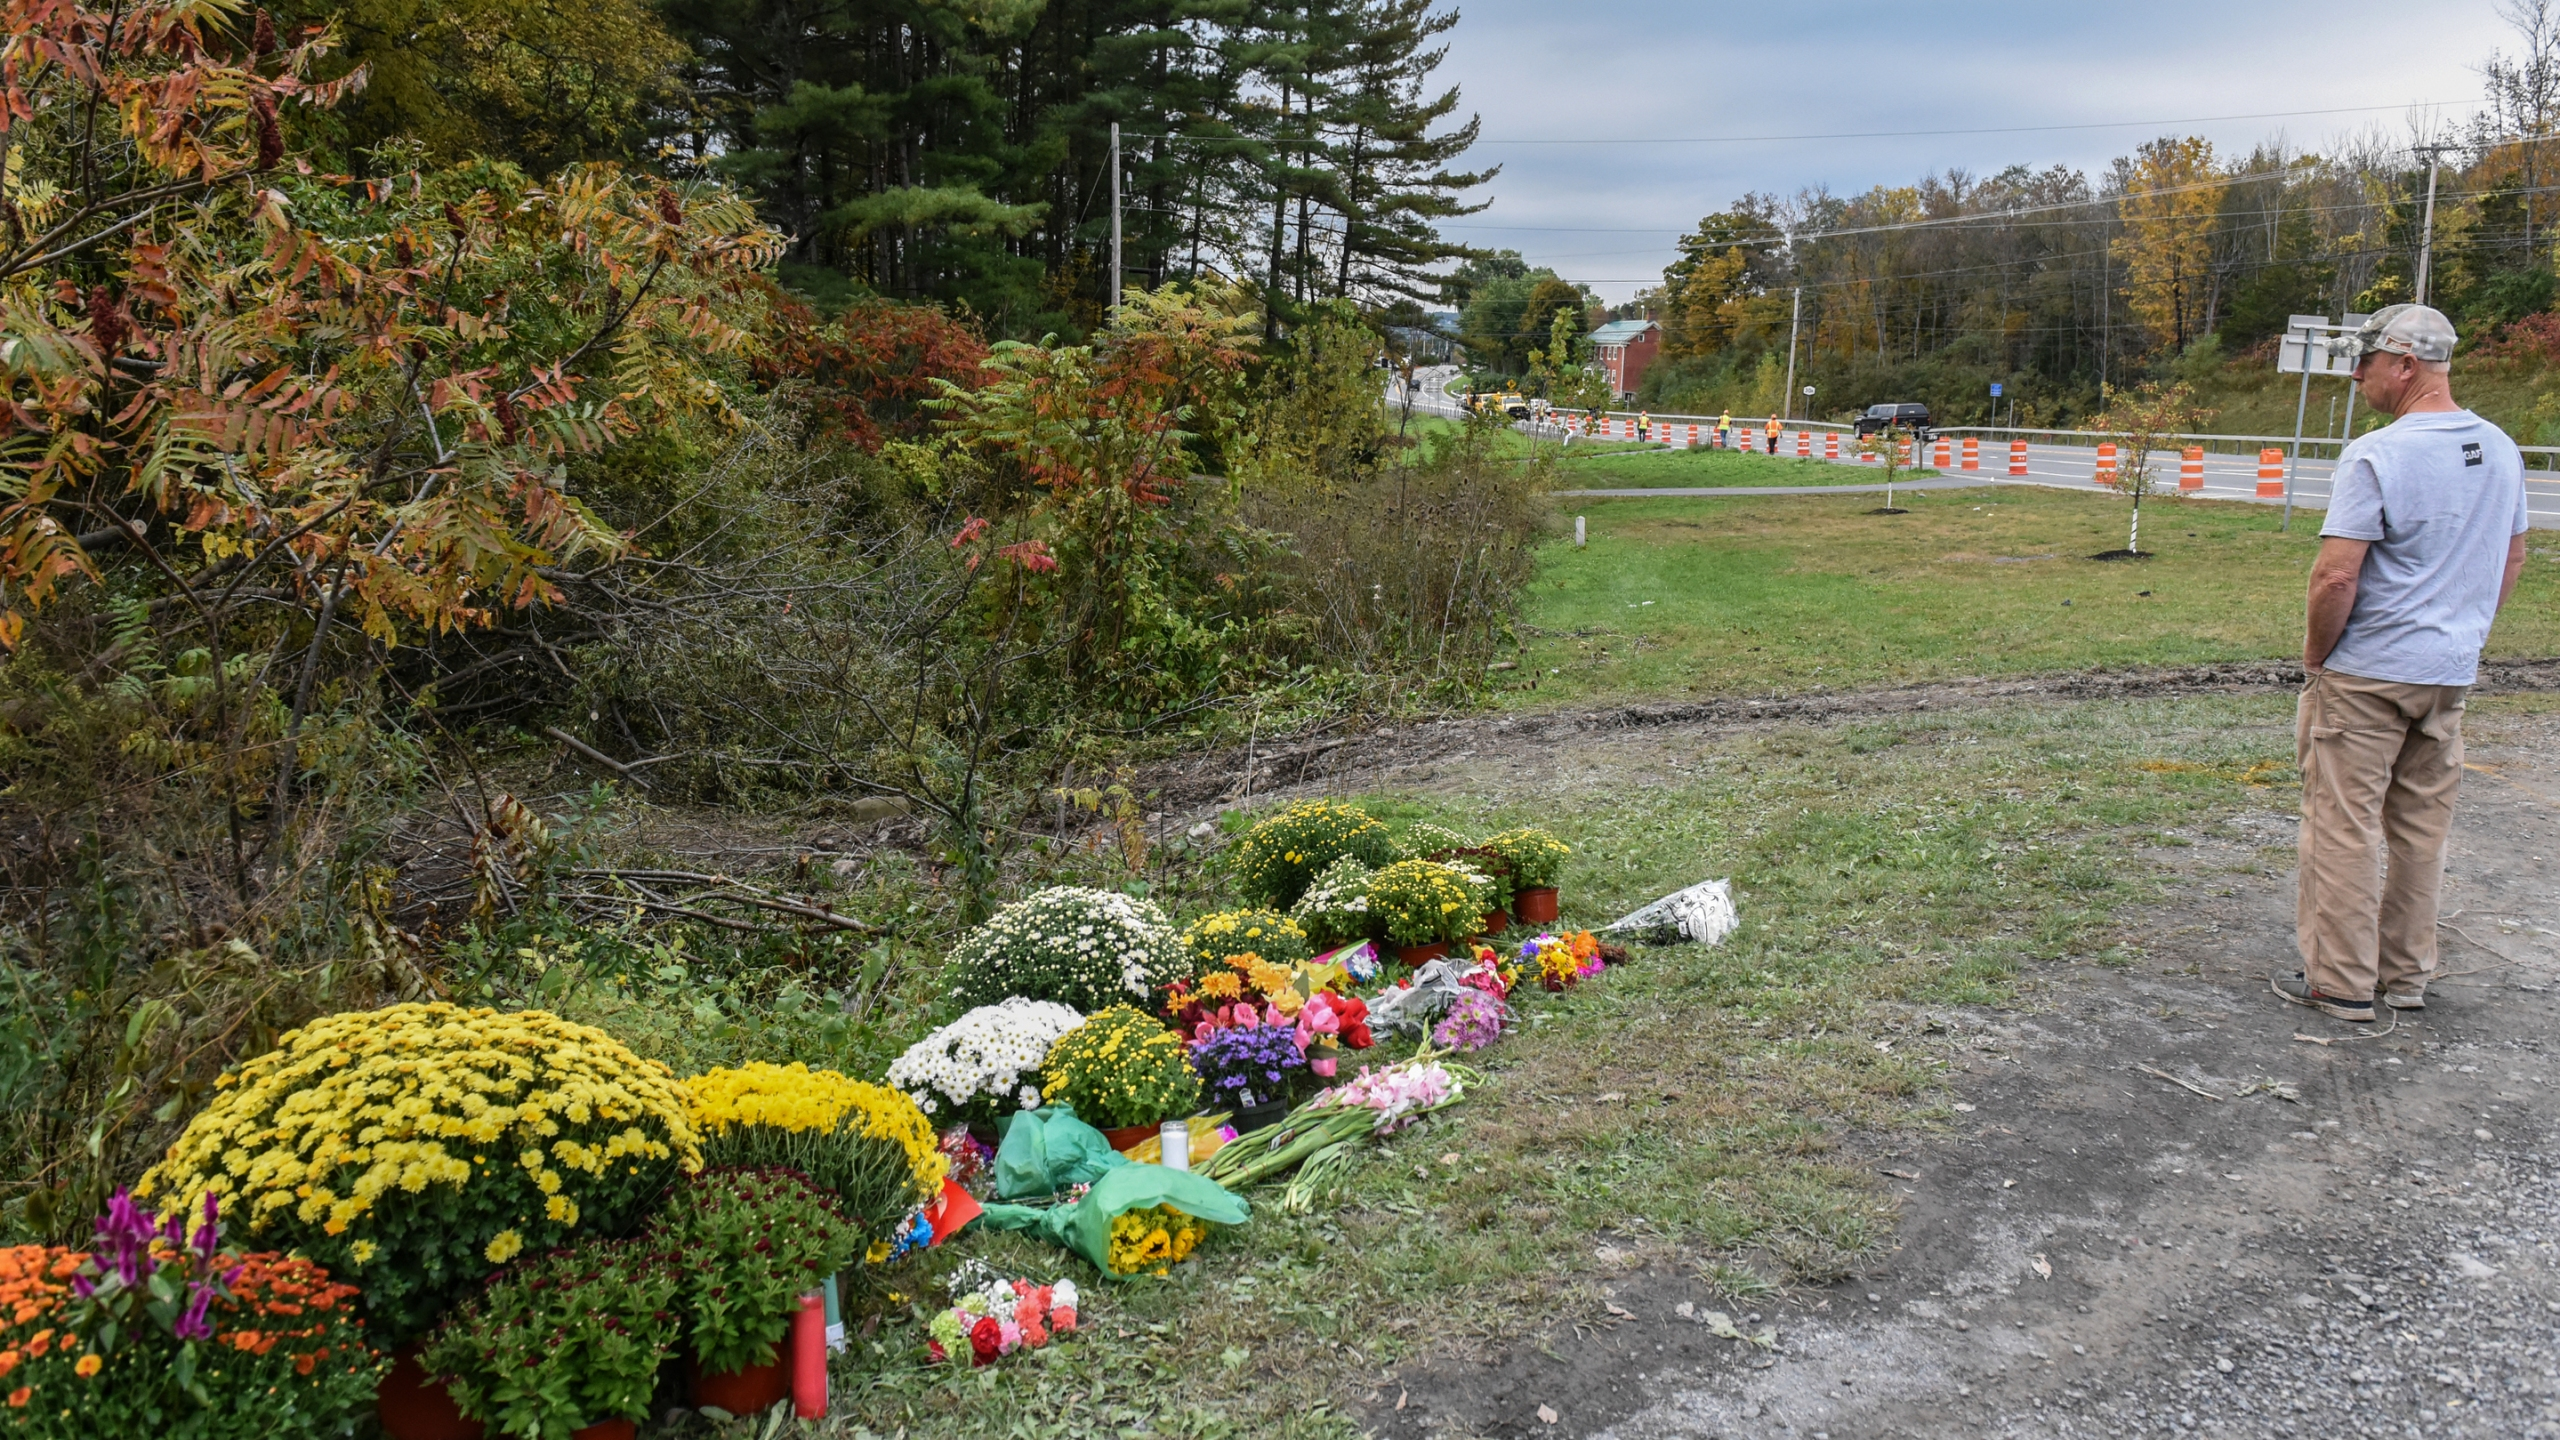 A mourner looks on at the site of the fatal limousine crash on October 8, 2018 in Schoharie, New York. 20 people died in the crash including the driver of the limo, 17 passengers, and two pedestrians. (Credit: Stephanie Keith/Getty Images)